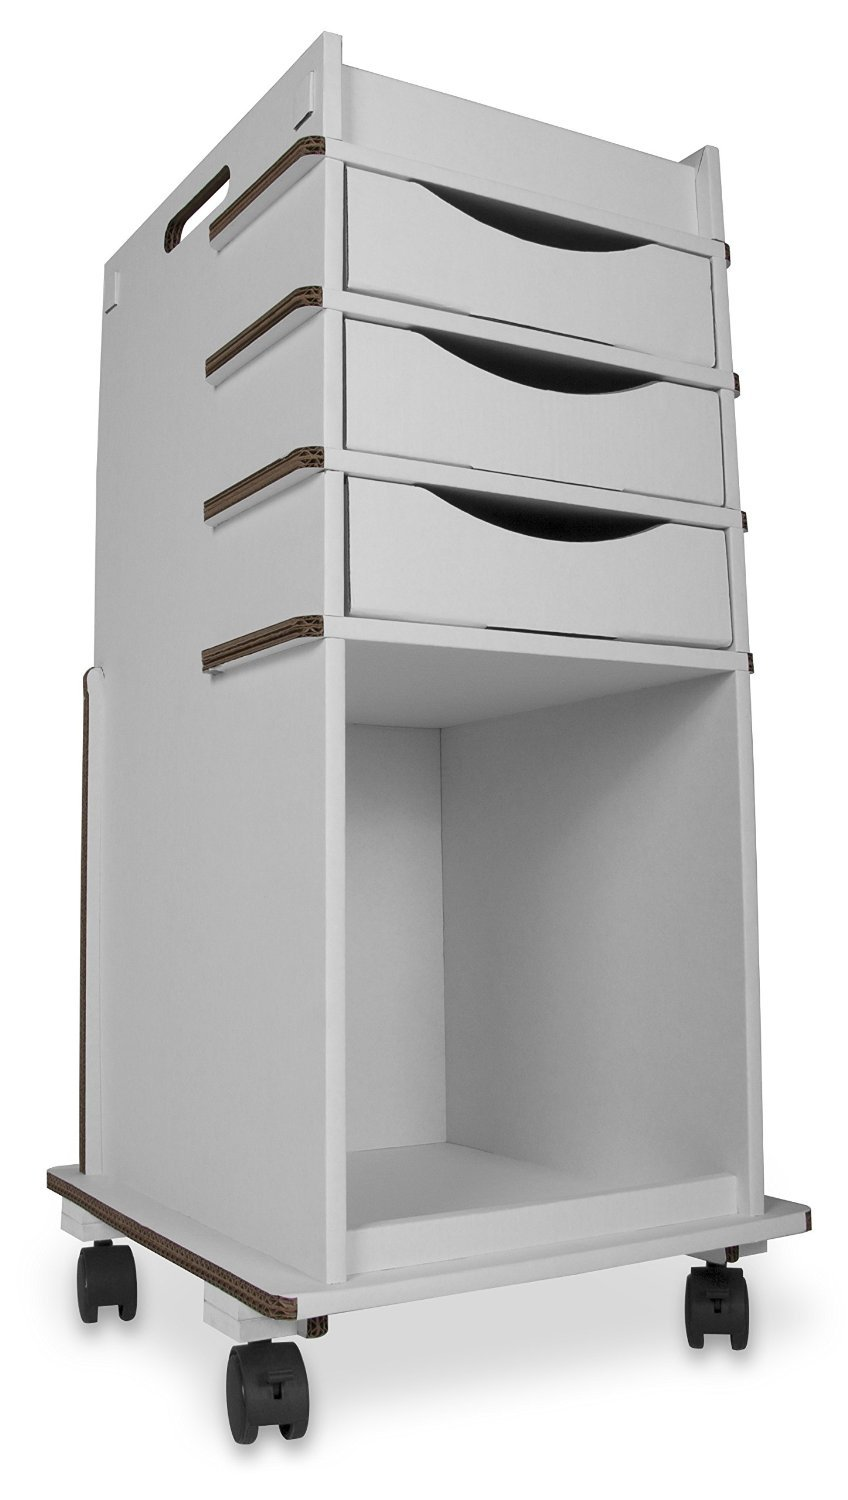 TrippGo Disposable Cart with 3 Drawers by TrippNT, 51698, 16'' x 34'' x 17'', White (Pack of 3)